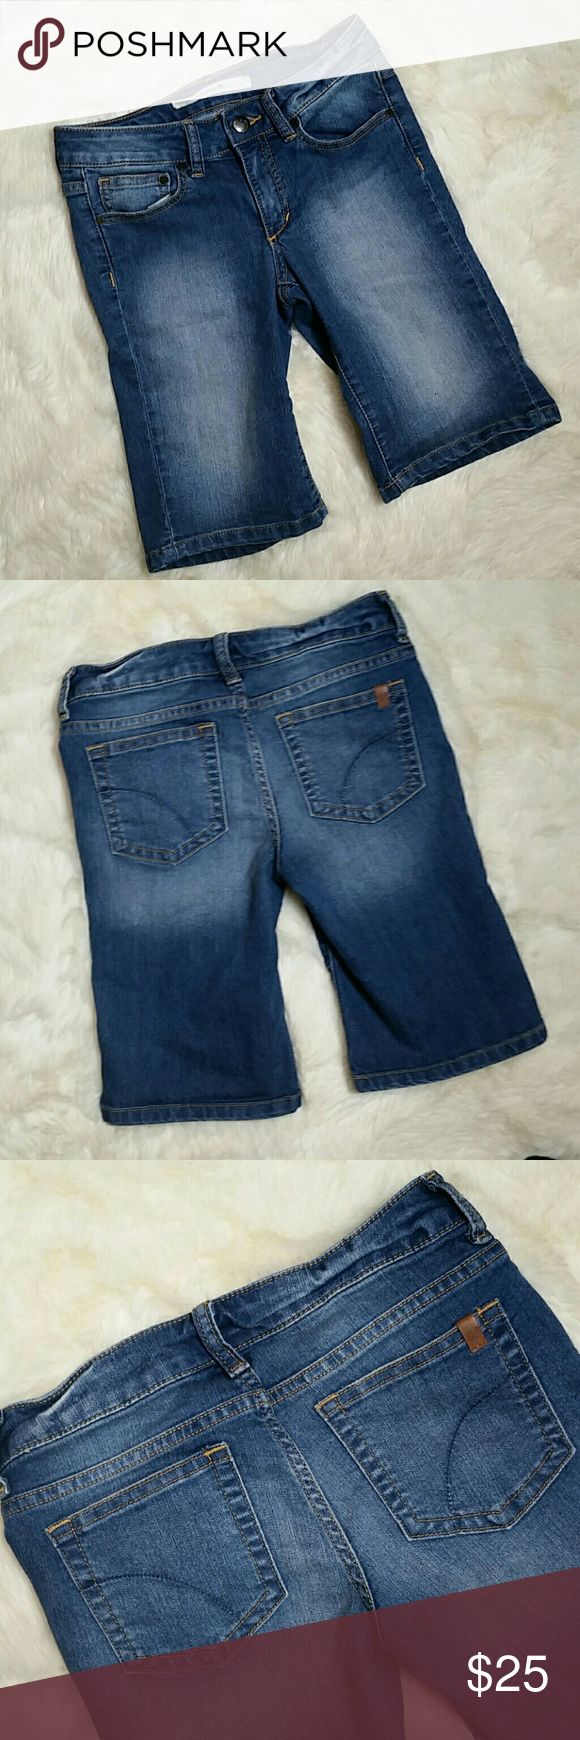 """Girls Joes Jeans Bermuda Shorts Size 12 Girls Joes Jeans Bermuda Shorts, size 12. Medium blue wash.  Button and zip fly. Stretch denim made up of 77% cotton, 22% polyester and 1% spandex. Preowned in great condition with no rips, holes, tears or stains. Size 12 (girls)  Waist 13"""" Rise 7"""" Inseam 10"""" Leg Opening 7.5"""" Full length top to bottom 16.5"""" Joe's Jeans Bottoms Shorts"""